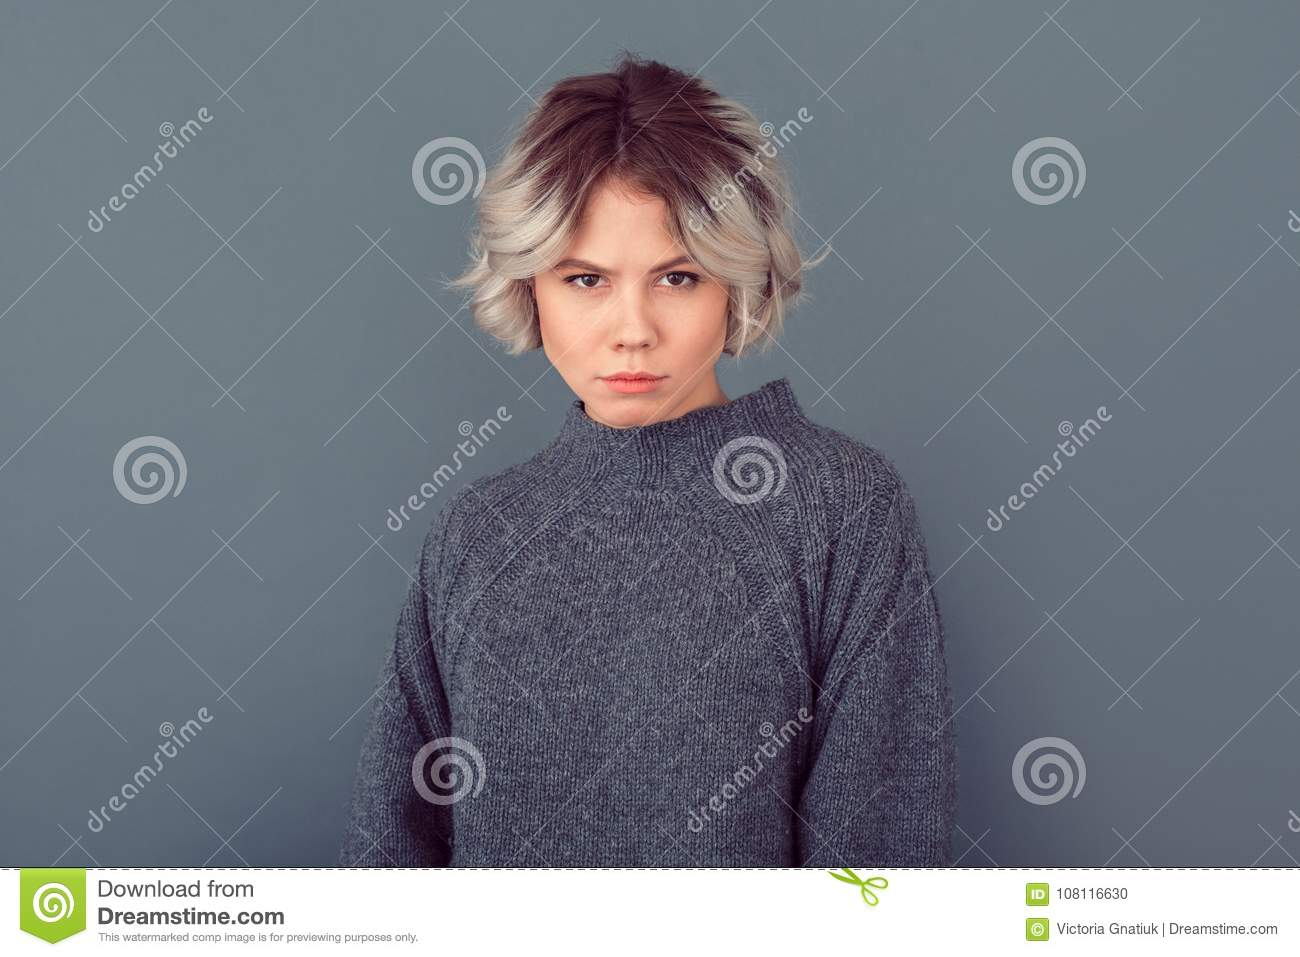 Young woman in a grey sweater studio picture on grey background cautious